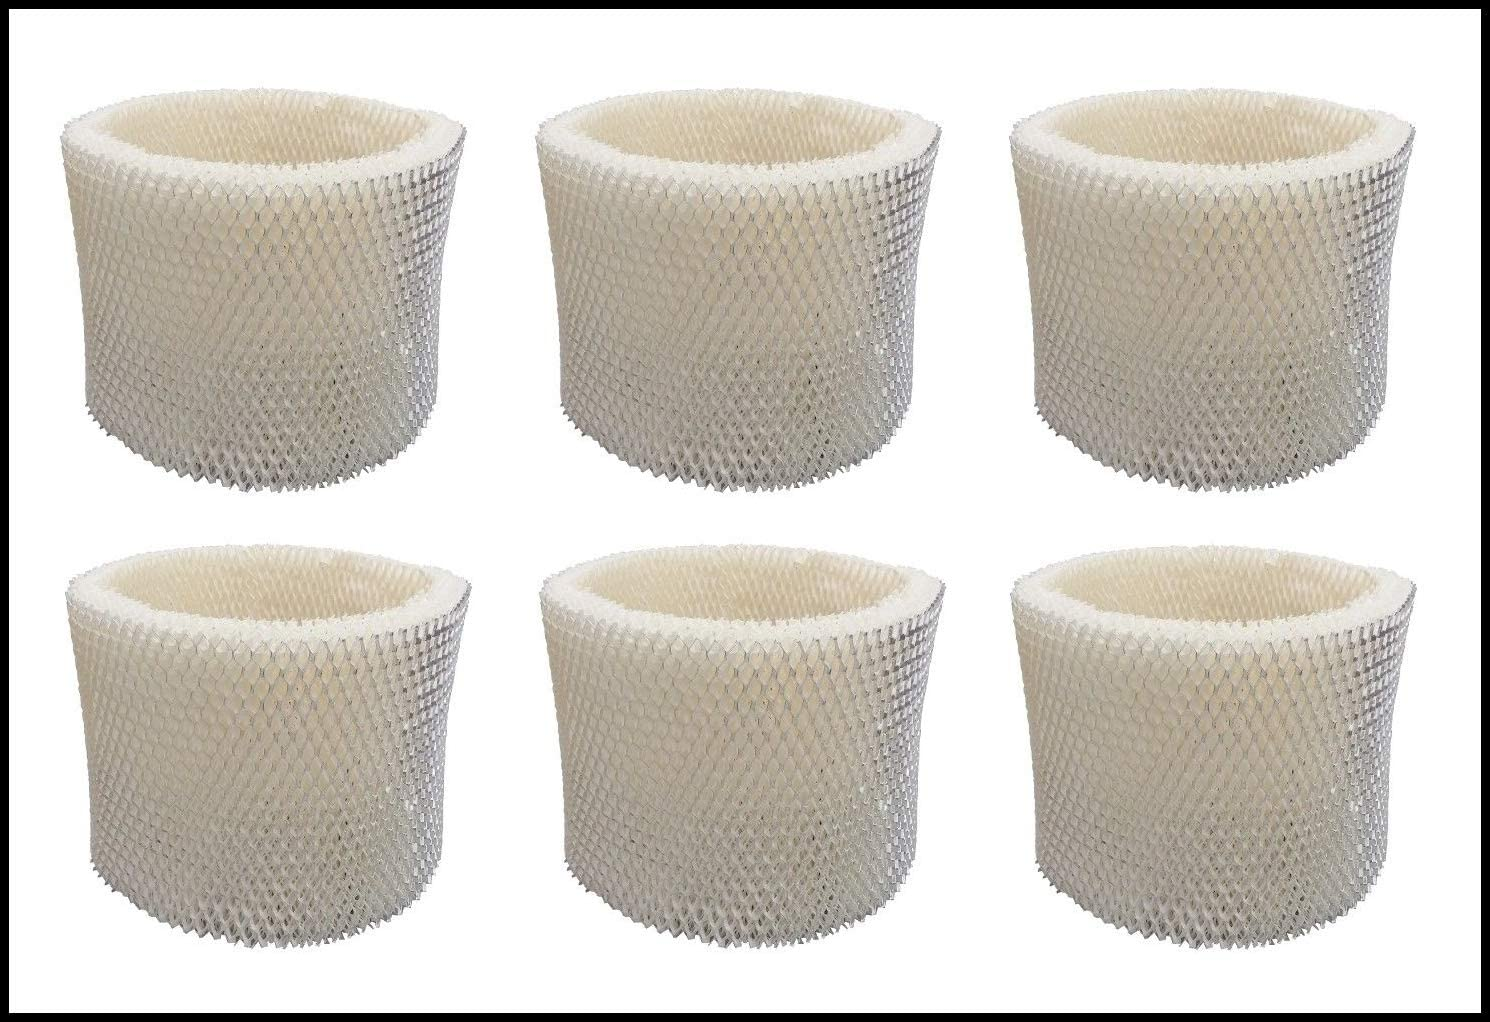 Humidifier Filter Replacement for Holmes H75 6-Pack